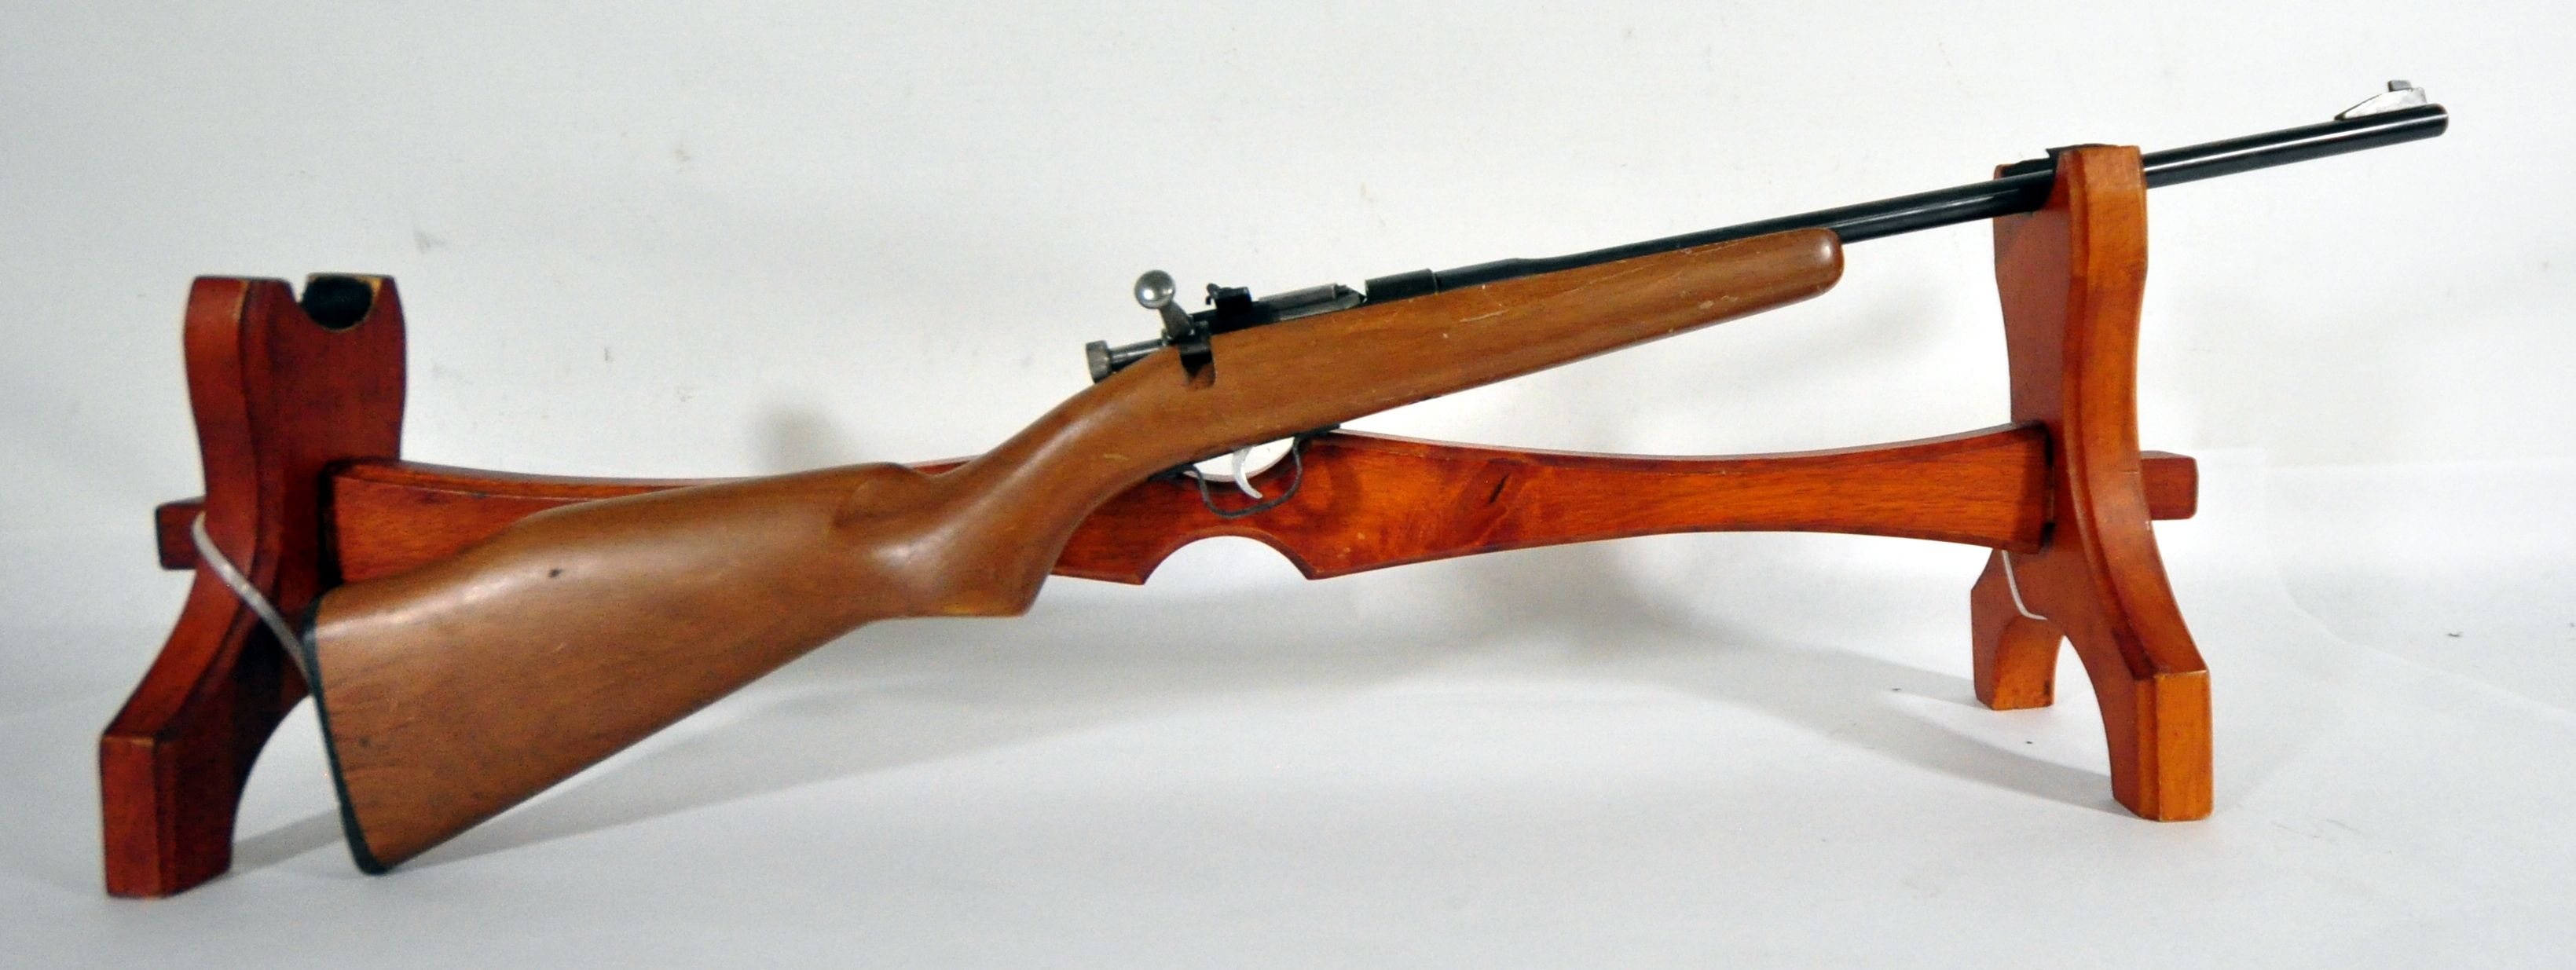 rifle co dating The rifle is for the most j stevens a & t co stevens serial numbers are useless for dating productionmine belowis a model 1915 made about 1920 right.